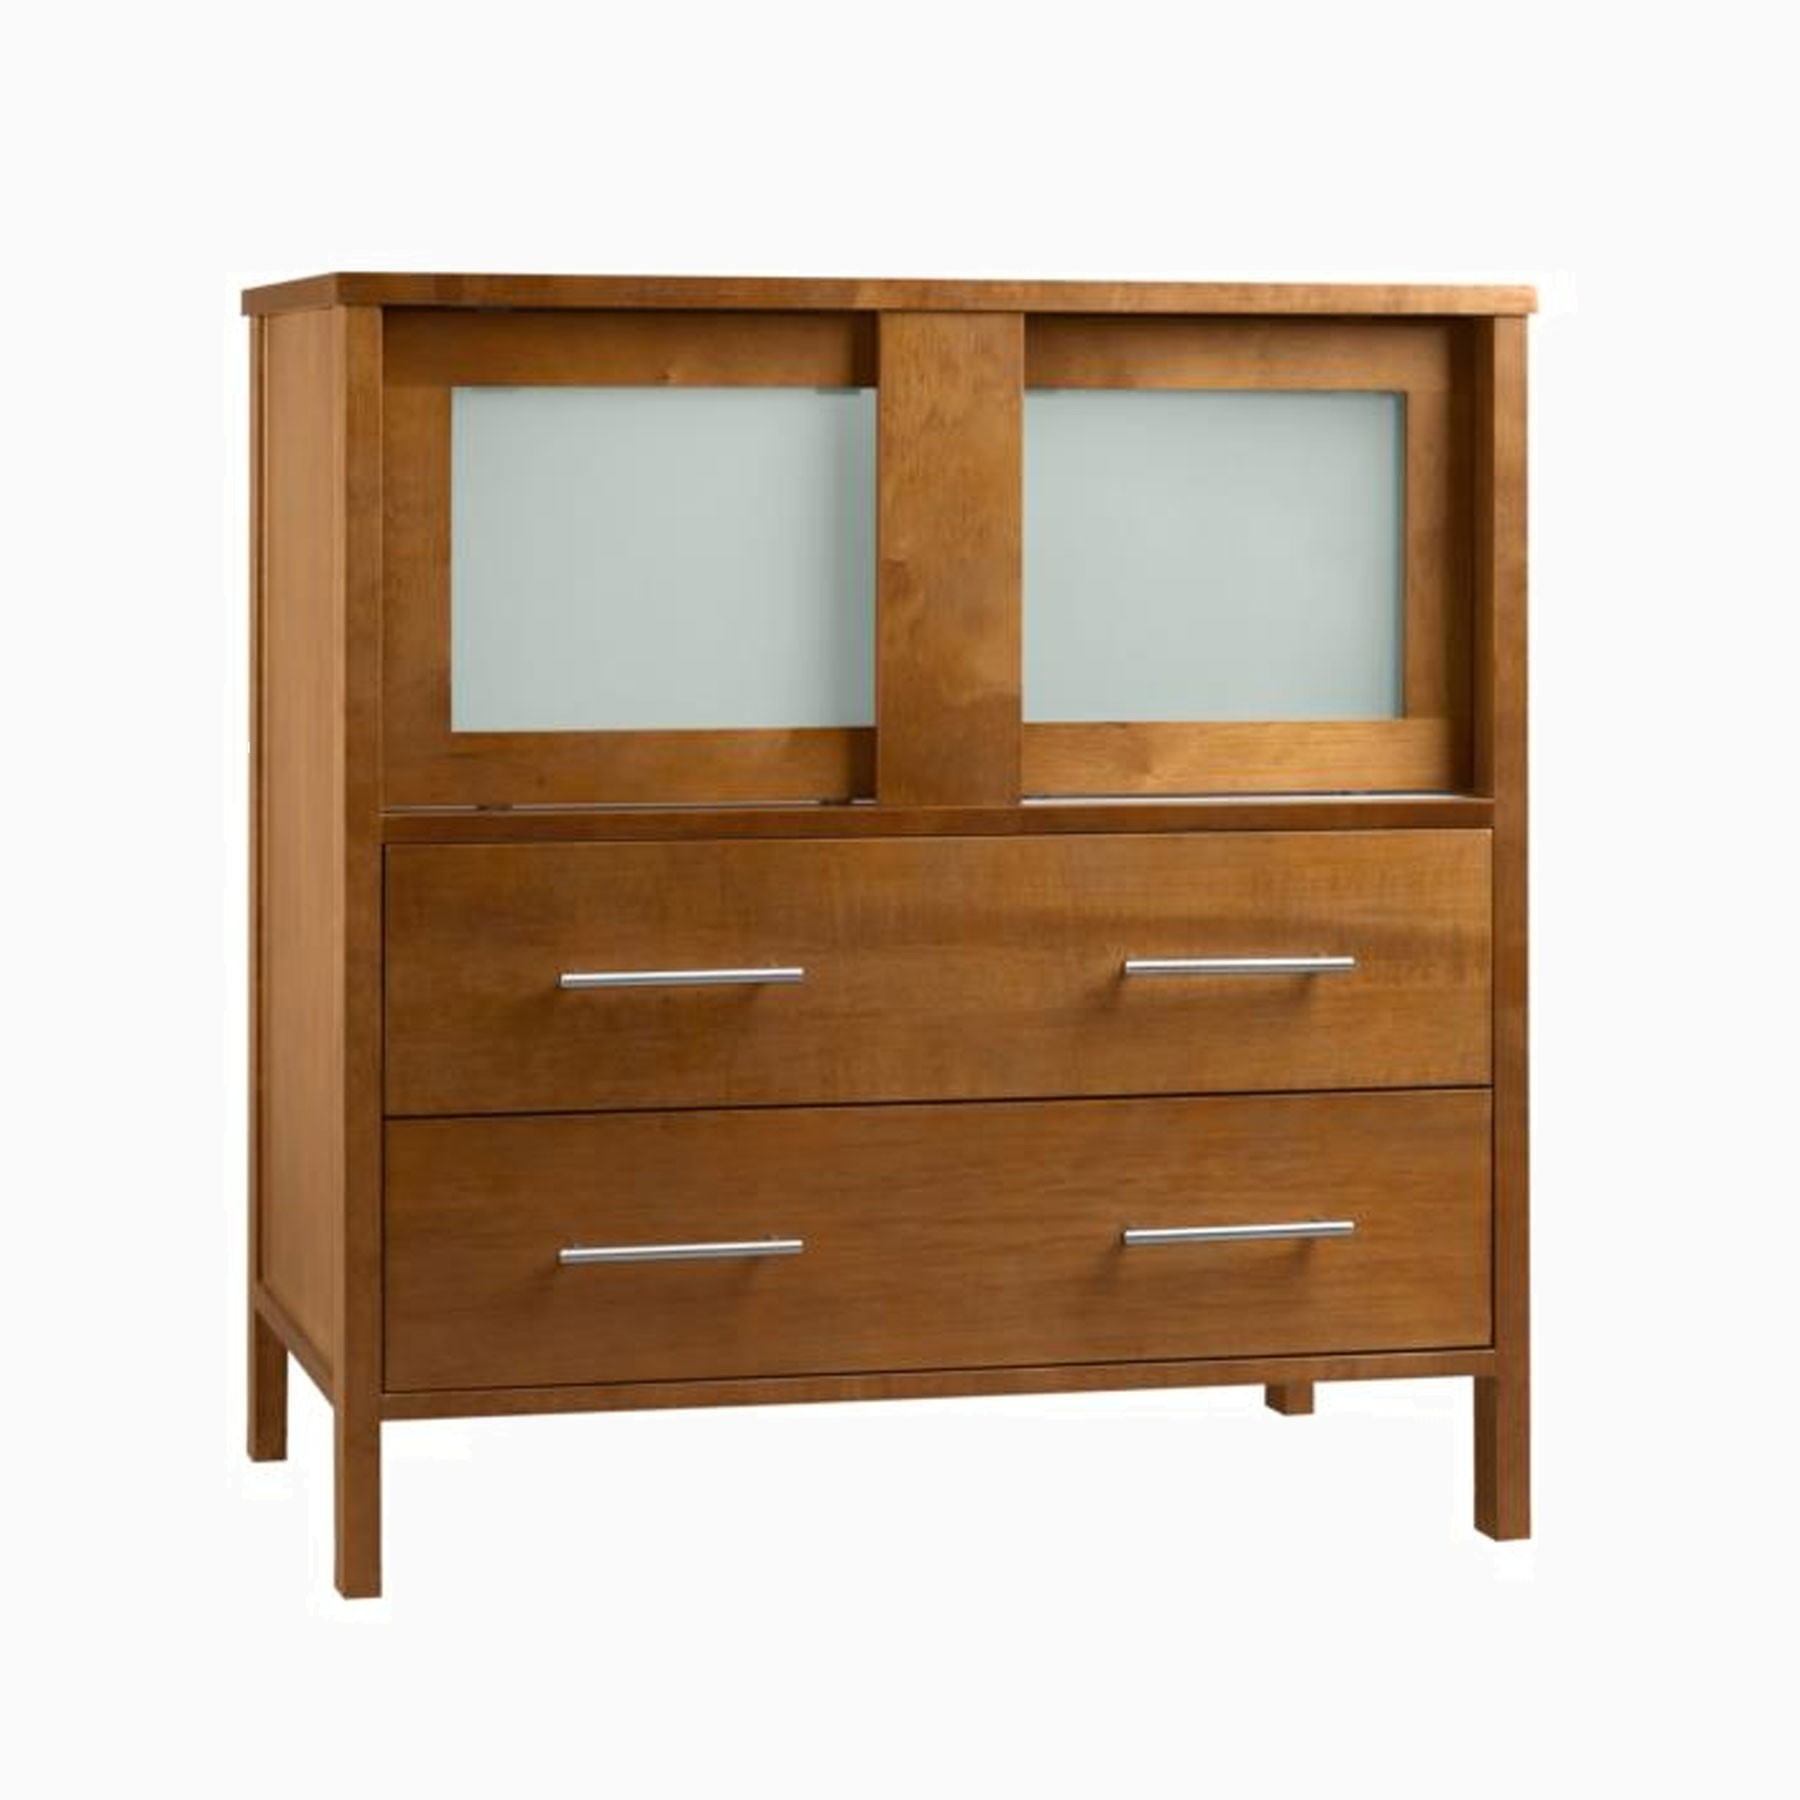 23 Paula Single Bathroom Vanity Base Cabinet Only With Frosted Gl Doors Natural Cherry